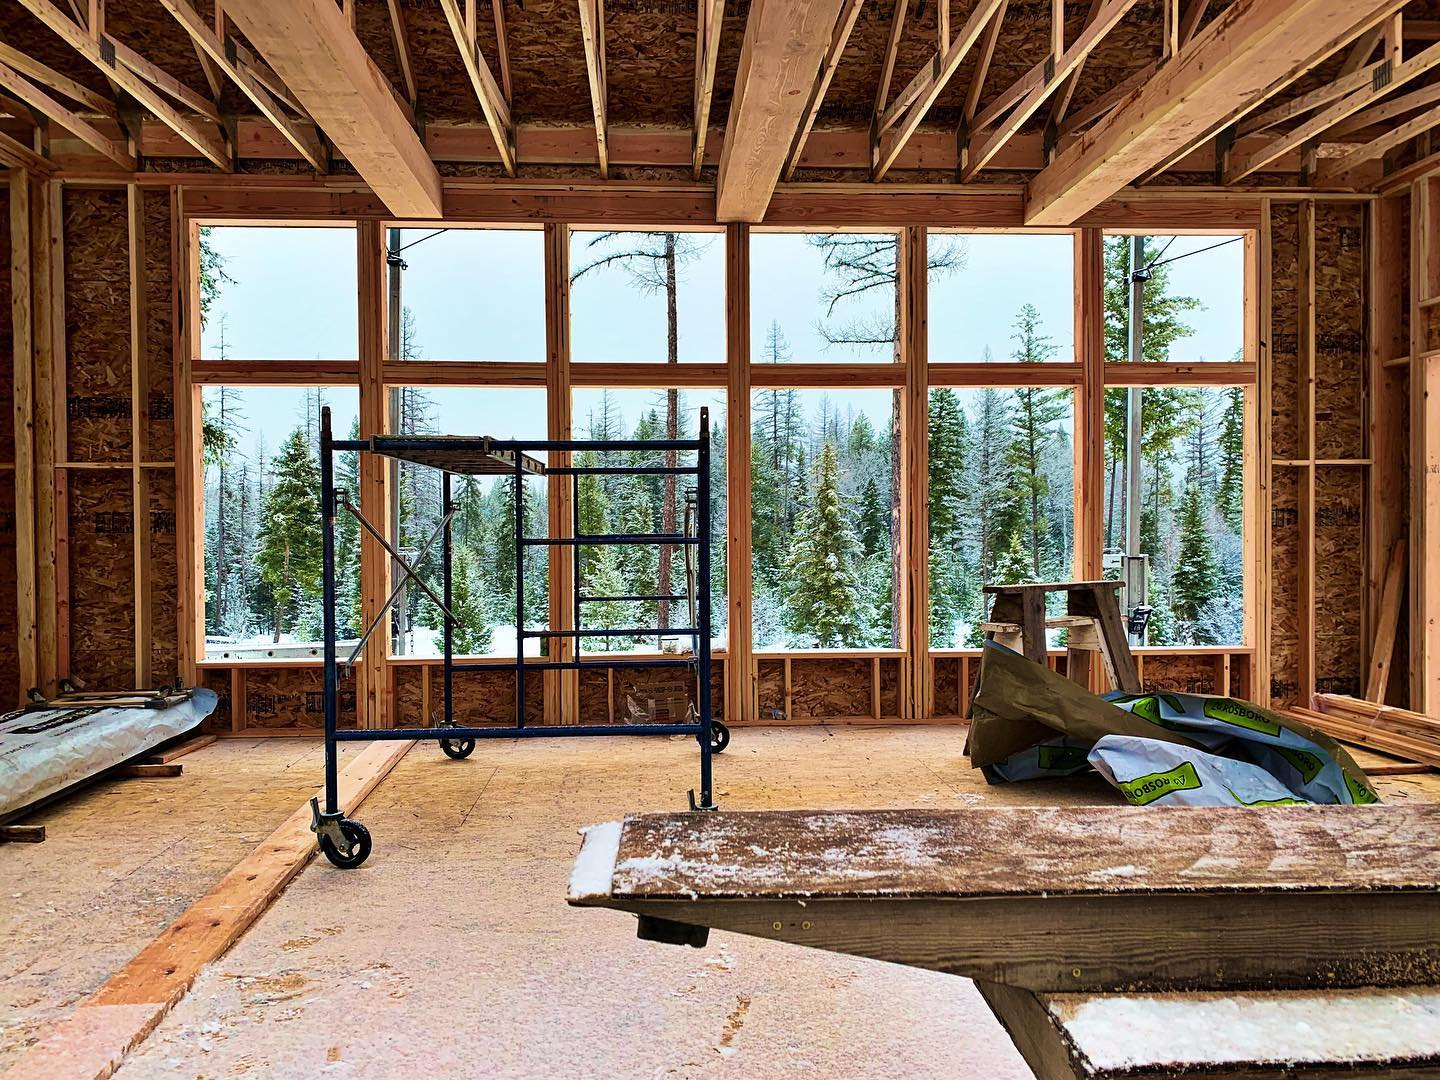 You can't see it today but there are fantastic Montana views through these windows. How much do you love this space?? whitefish custom home builder